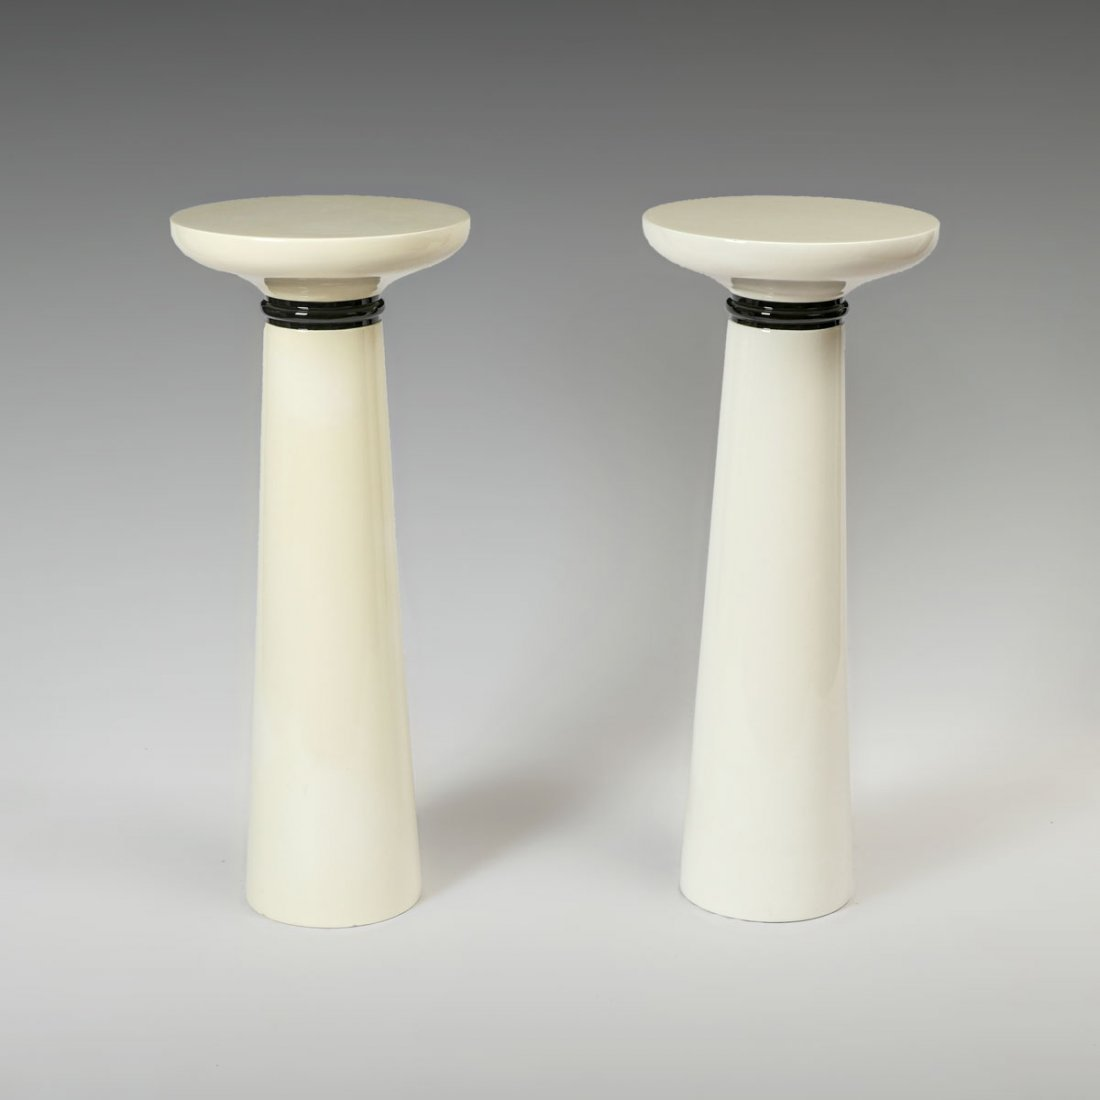 PAIR OF MODERN PEDESTALS